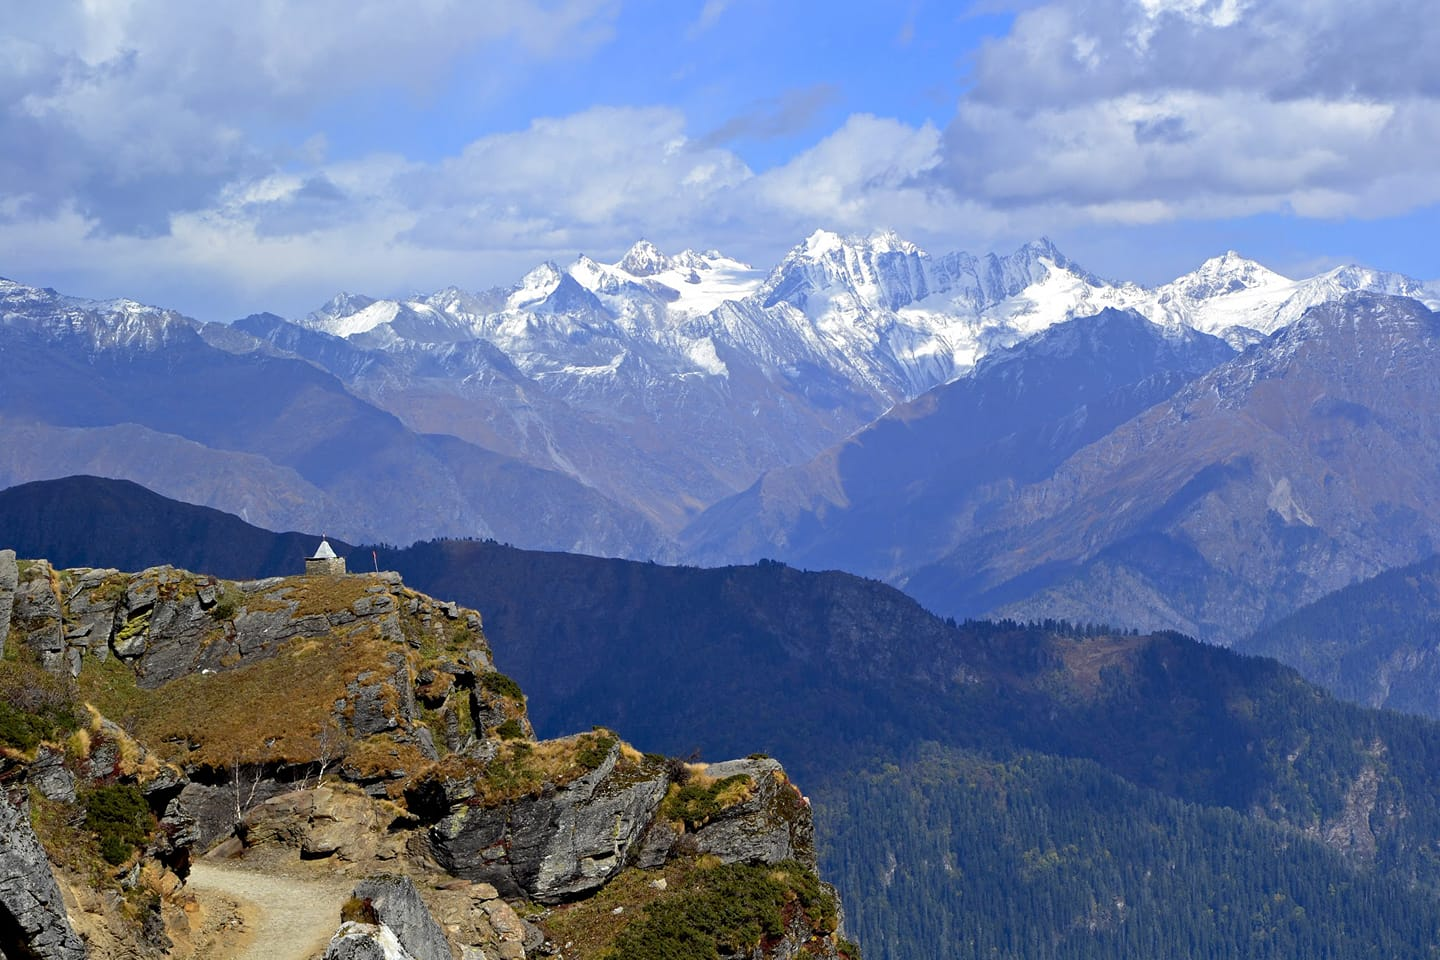 The majestic Peaks of Garhwal as seen from the Chansal Pass.